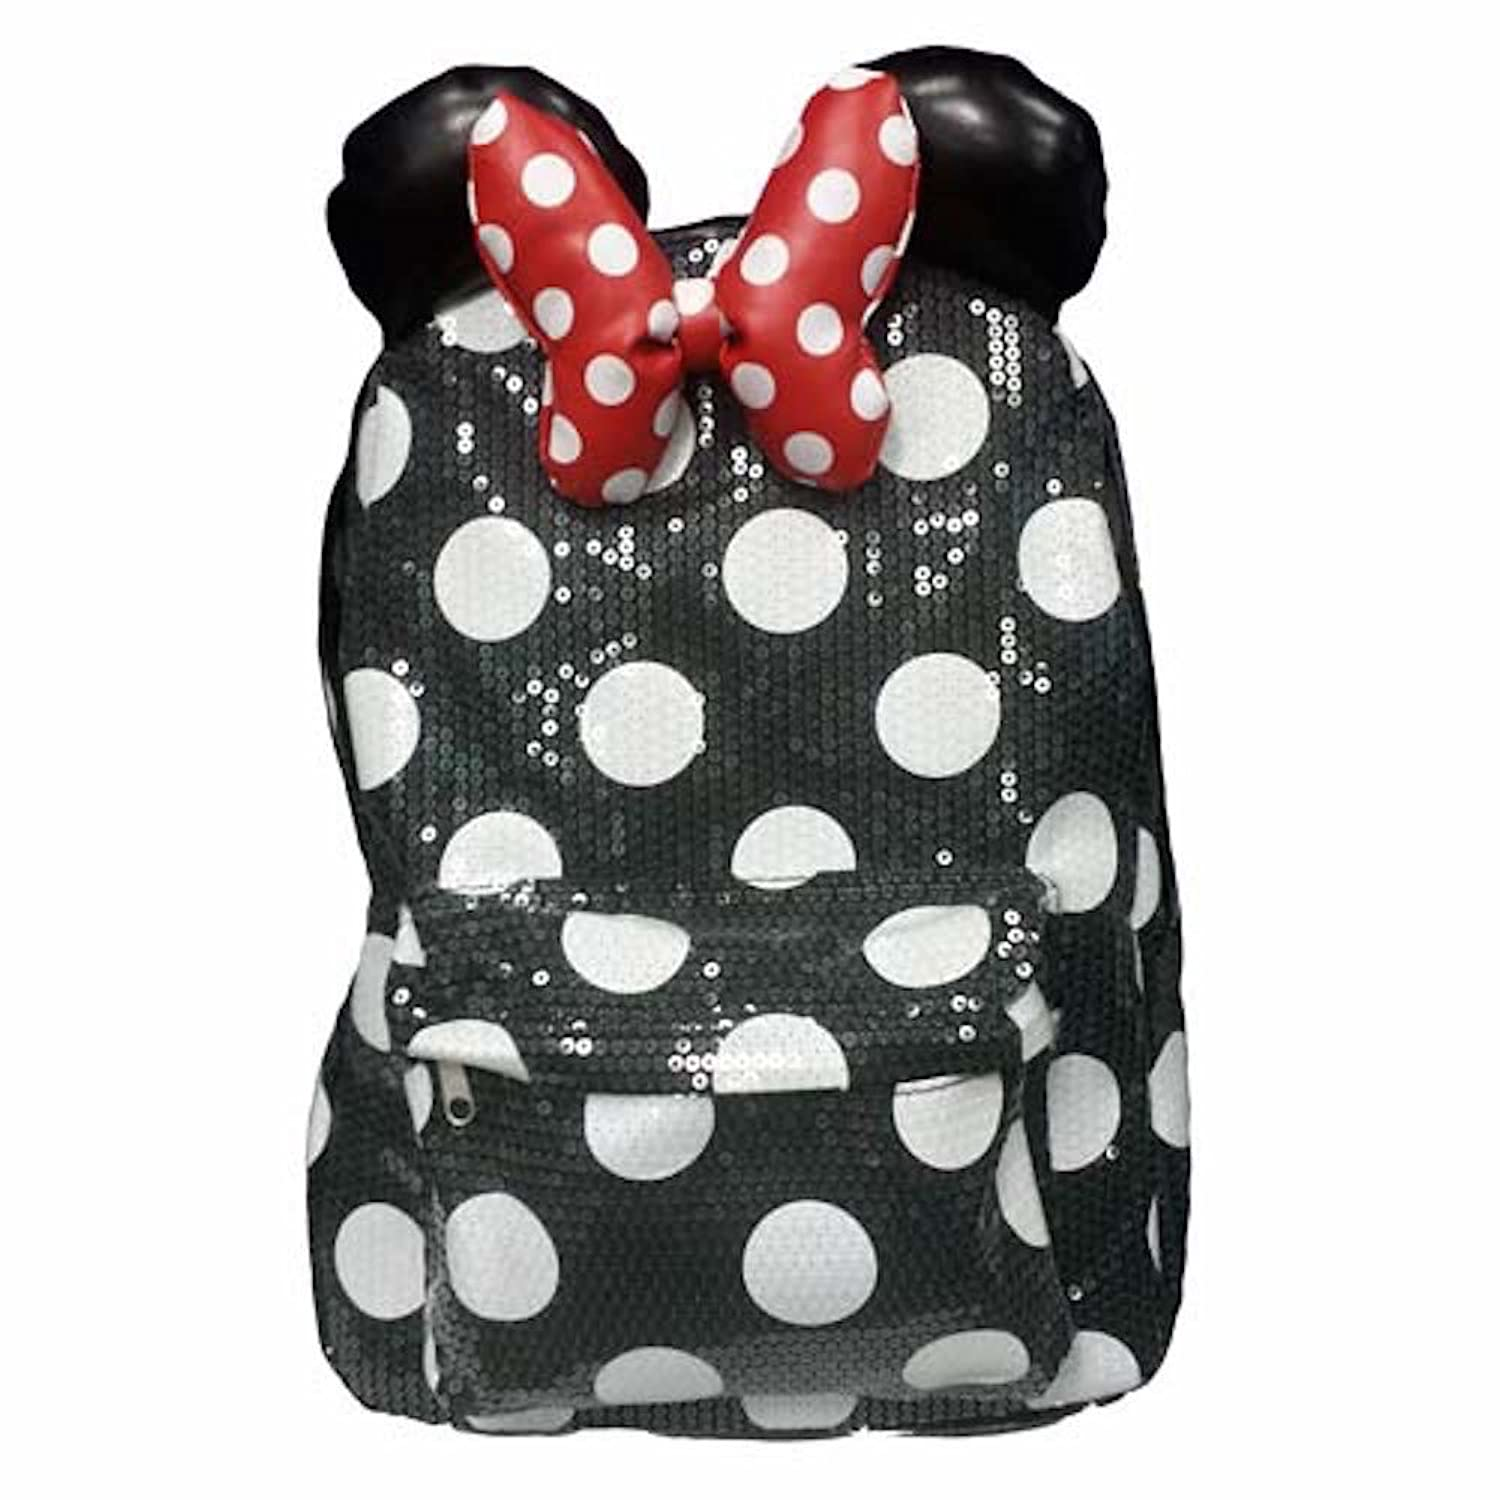 Disney Parks Minnie Sequin Backpack Image 1